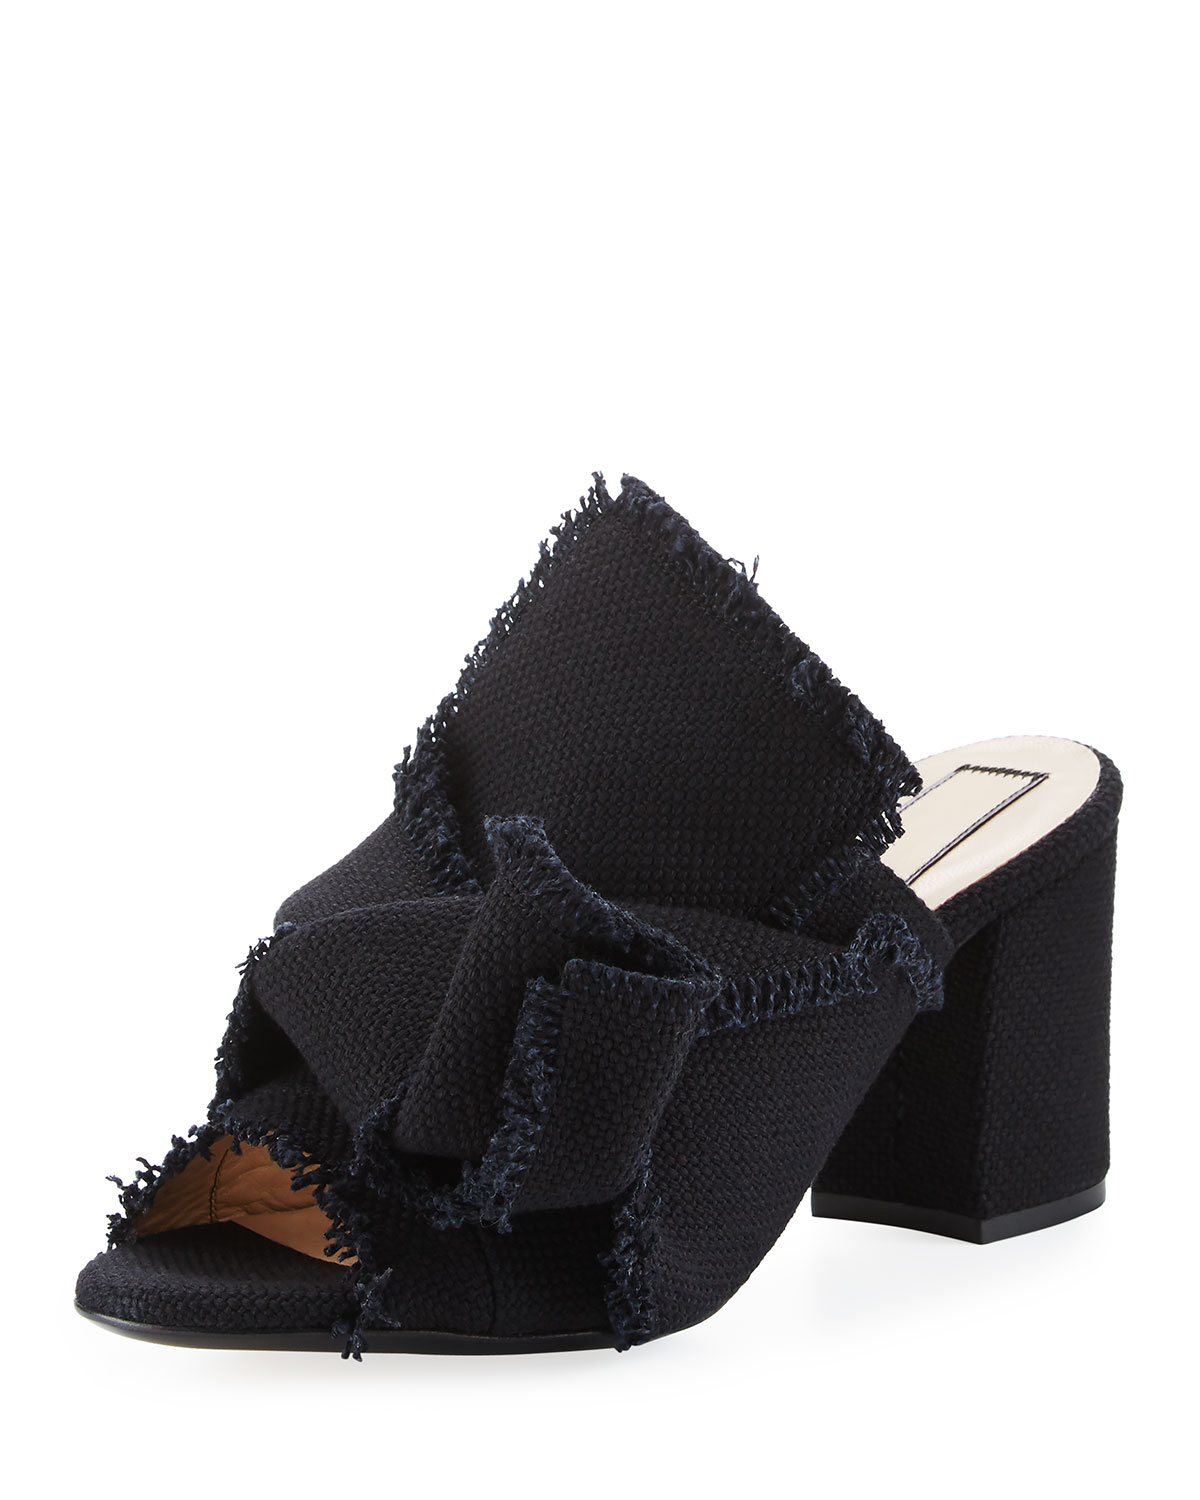 Frayed Canvas Block-Heel Mule Sandal, Black